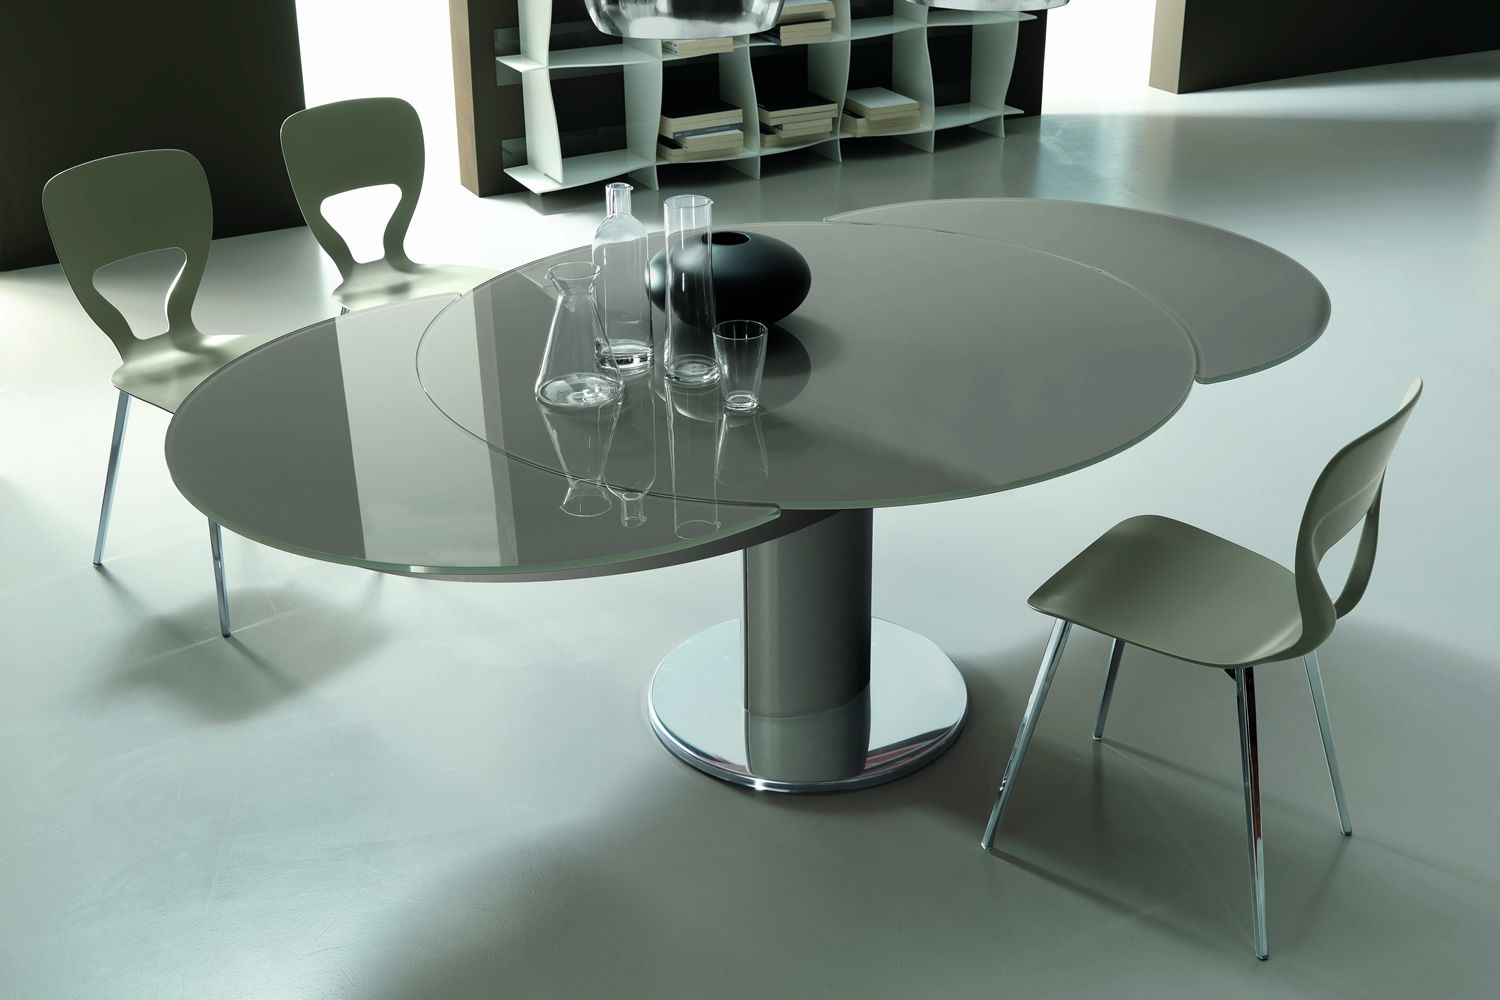 Giro table design ronde de bontempi casa extensible for Table ronde extensible